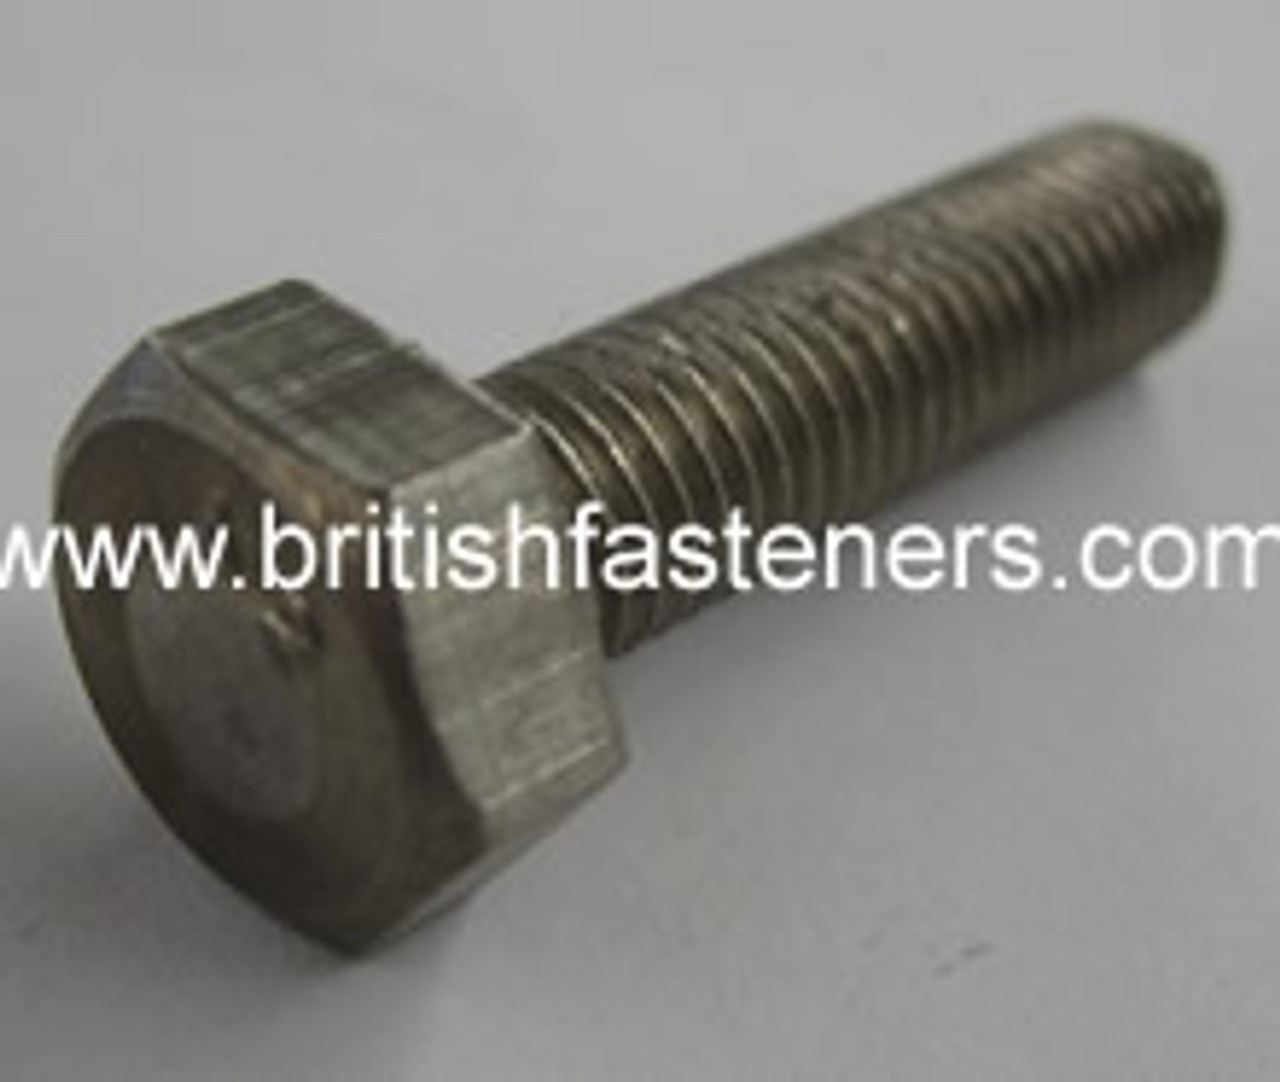 "Stainless Bolt BSF Hex 5/16 x 1-1/4"" - (6365)"